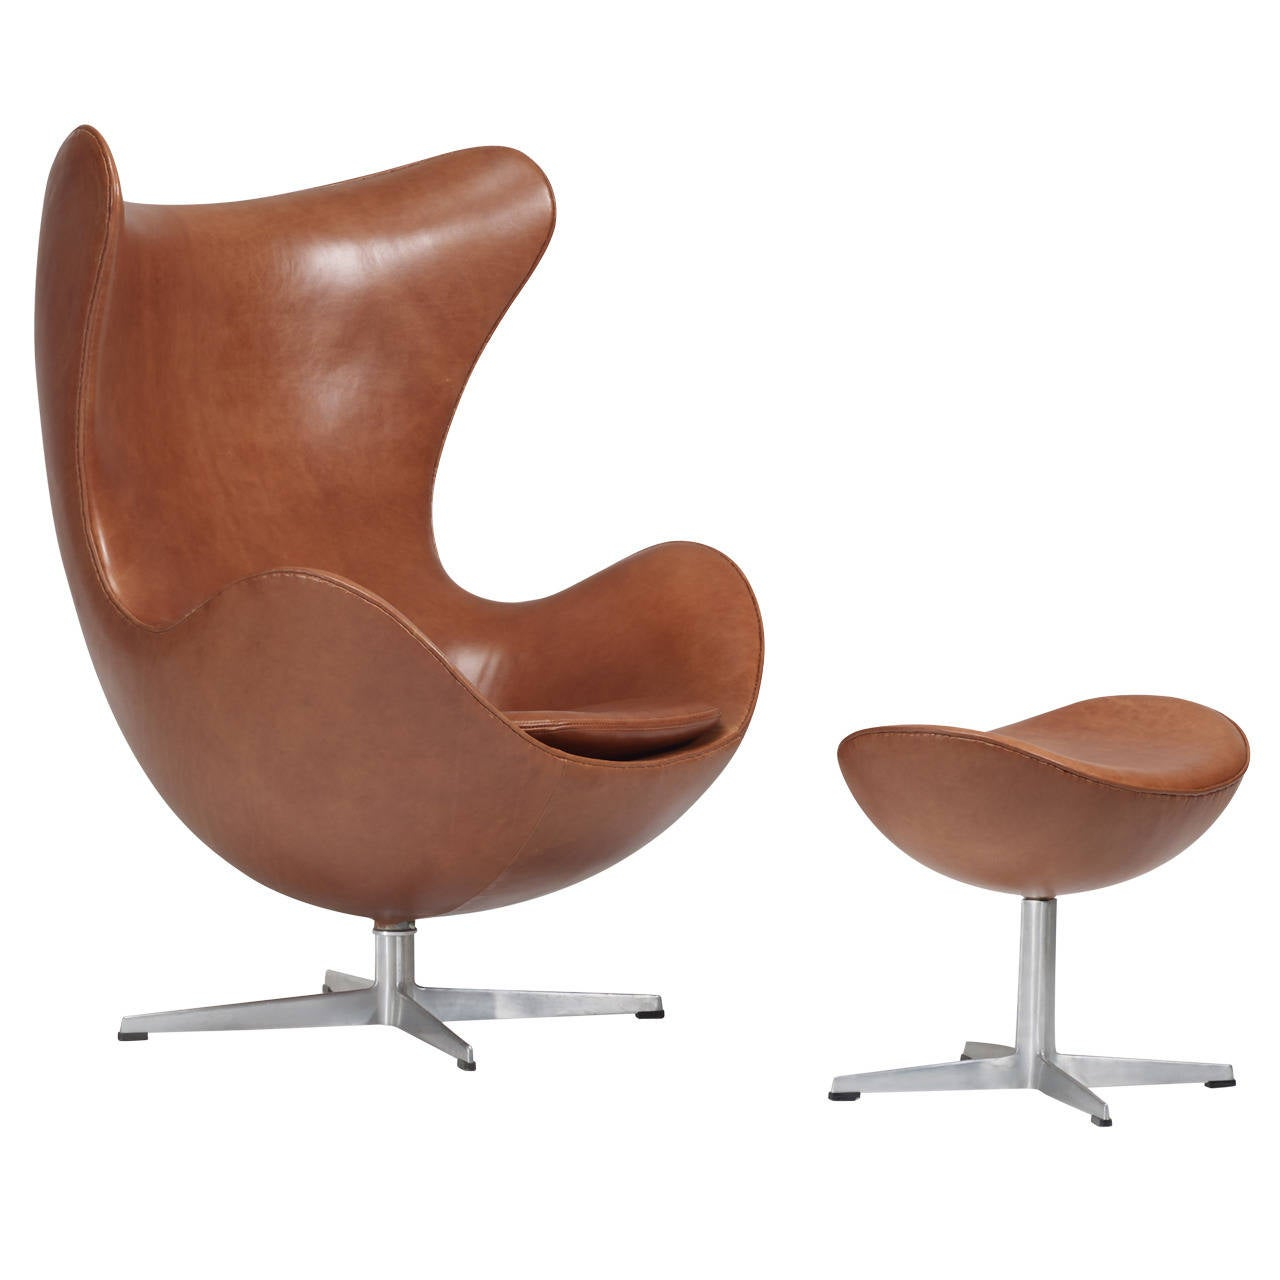 early arne jacobsen egg chair and ottoman for fritz hansen pair available at 1stdibs. Black Bedroom Furniture Sets. Home Design Ideas